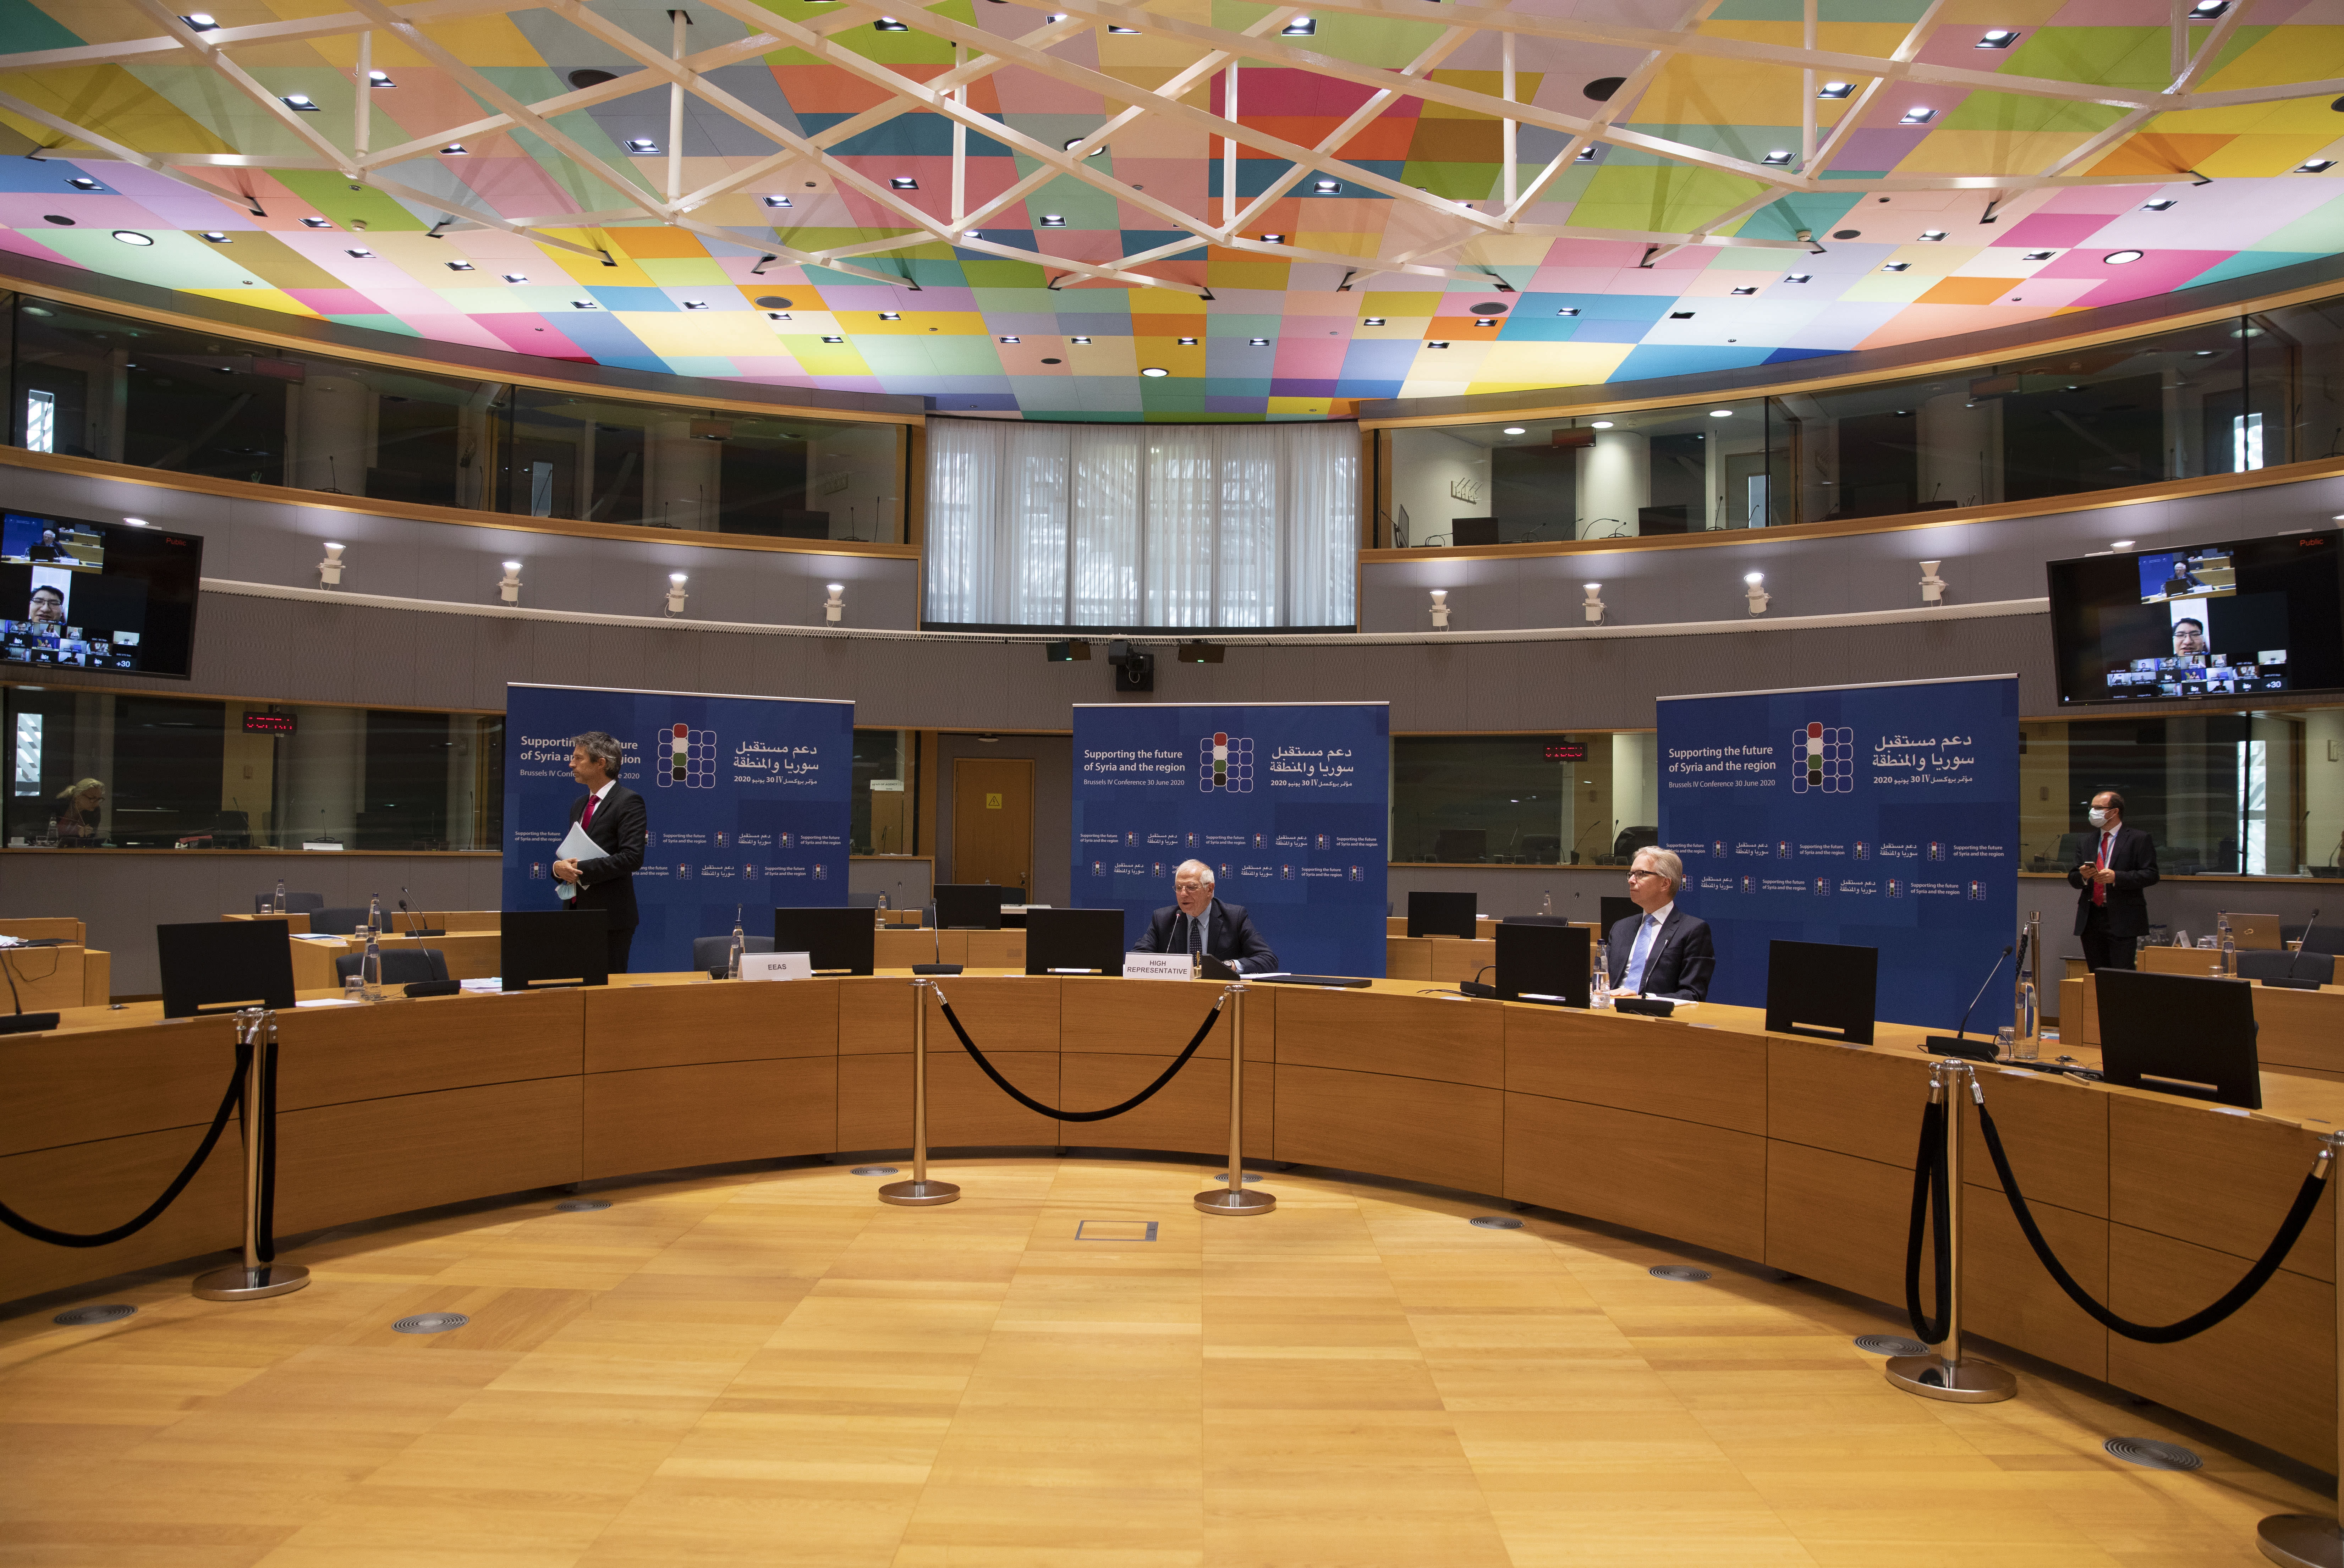 European Union foreign policy chief Josep Borrell addresses a meeting, Supporting the future of Syria and the Region, in videoconference format at the European Council building in Brussels, Tuesday, June 30, 2020. (AP Photo/Virginia Mayo, Pool)